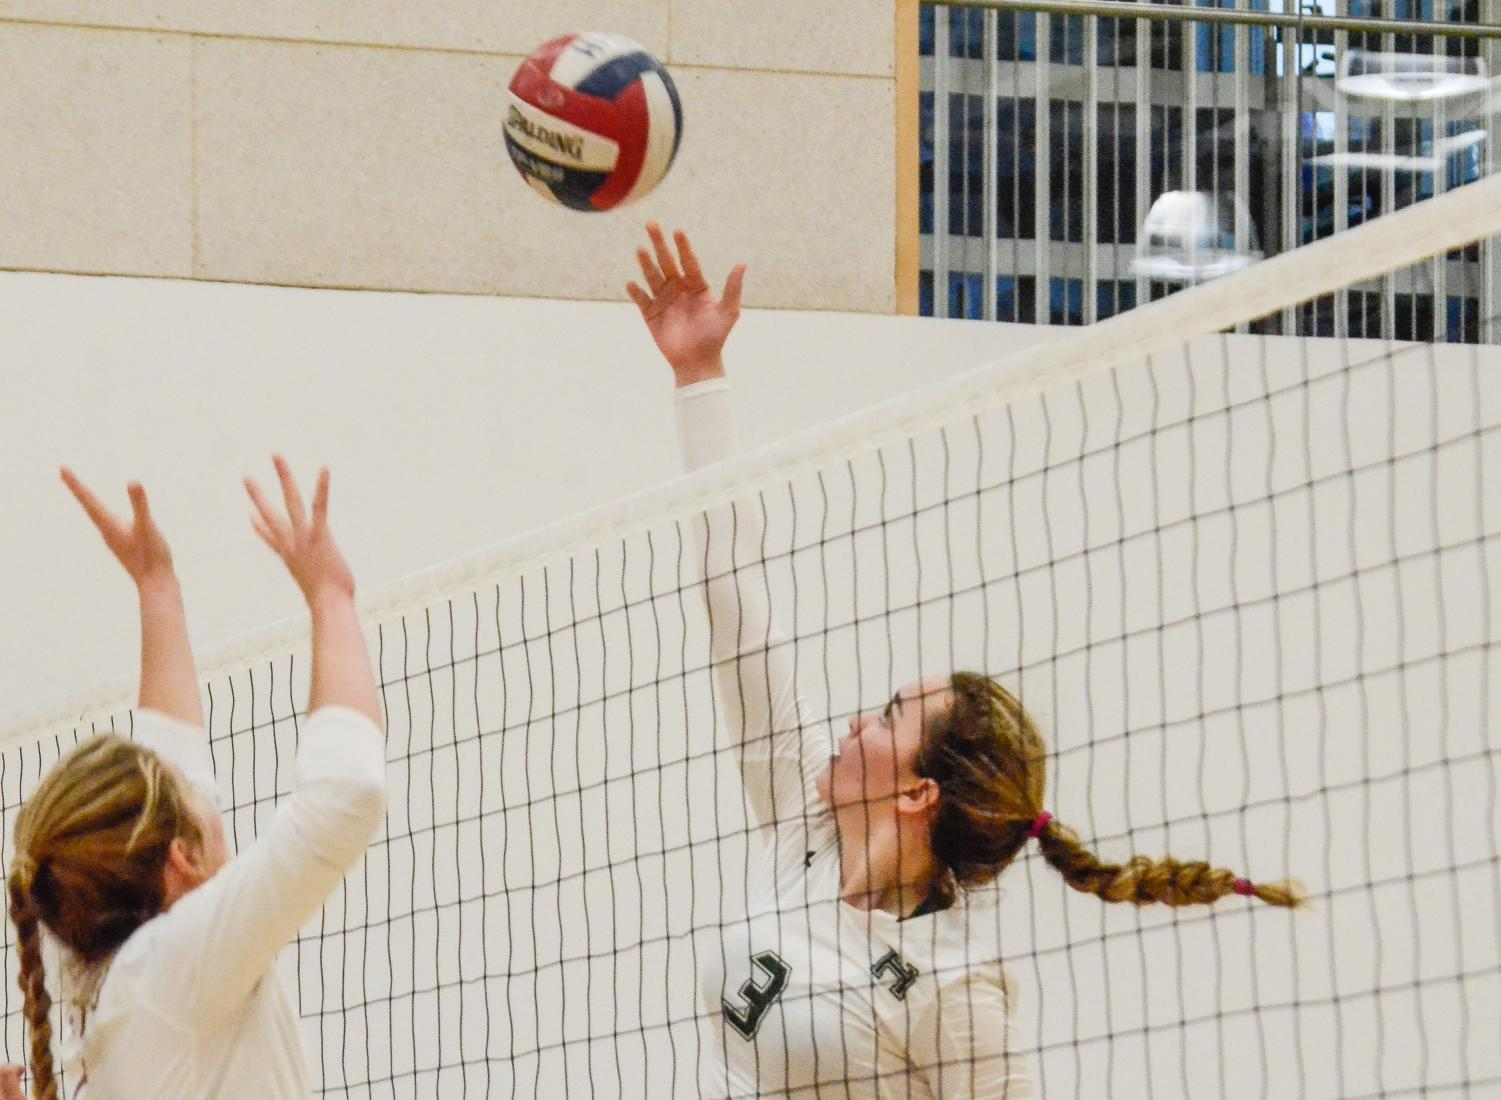 Lauren Beede (11) reaches up to tap the ball over the net in today's CCS semifinals game against Santa Cruz High School. The game was held at Menlo High School and was carried by the Harker varsity girls team, who will proceed to play Notre Dame High School in the finals game on Saturday.